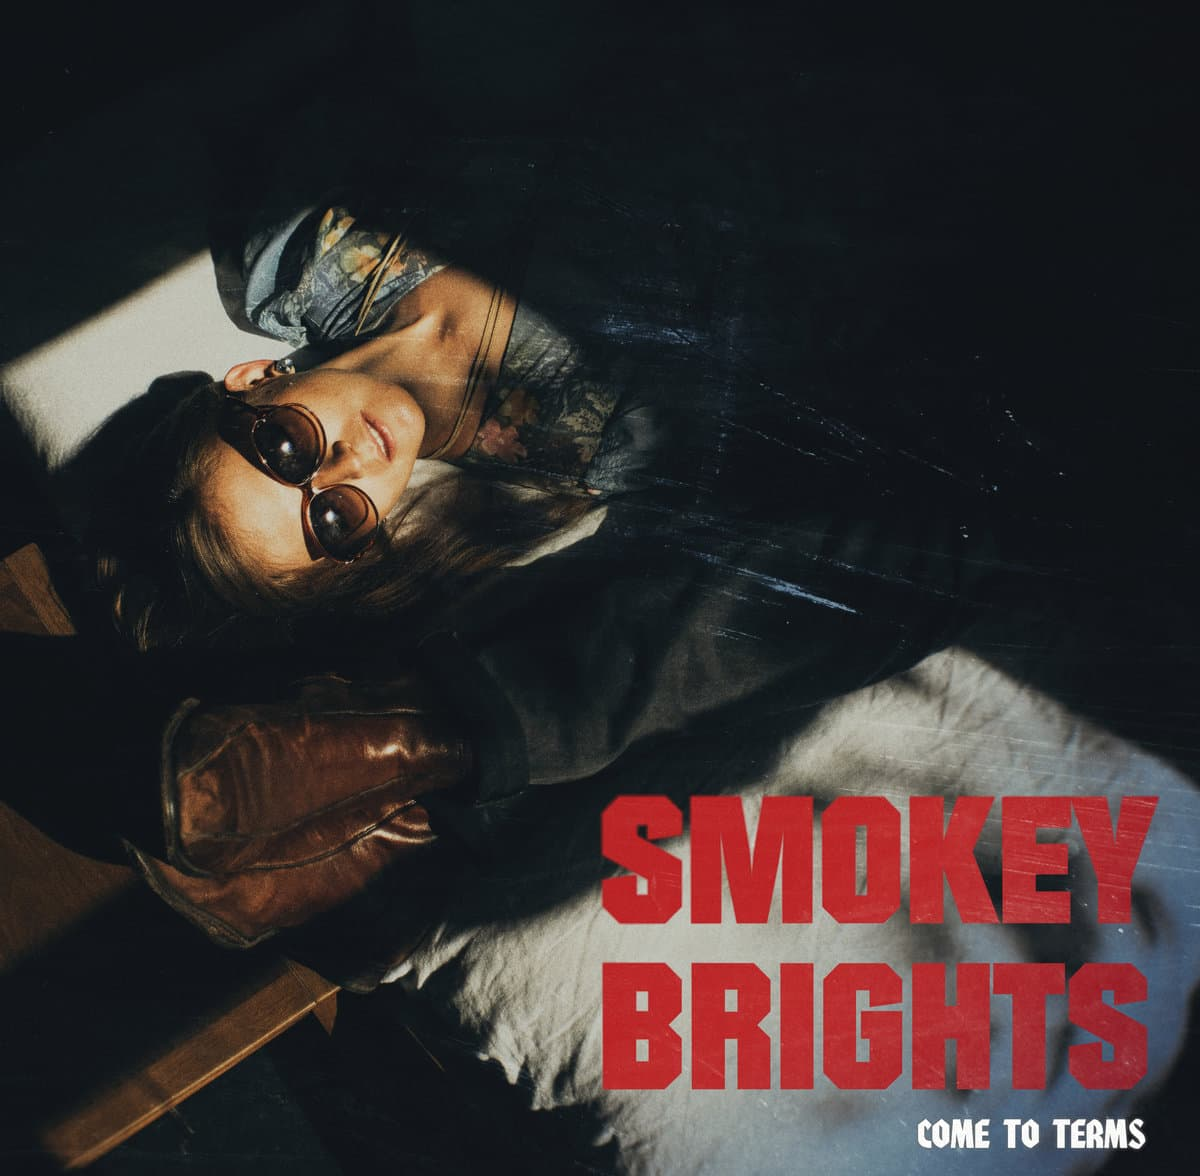 Come to Terms - Smokey Brights.jpg